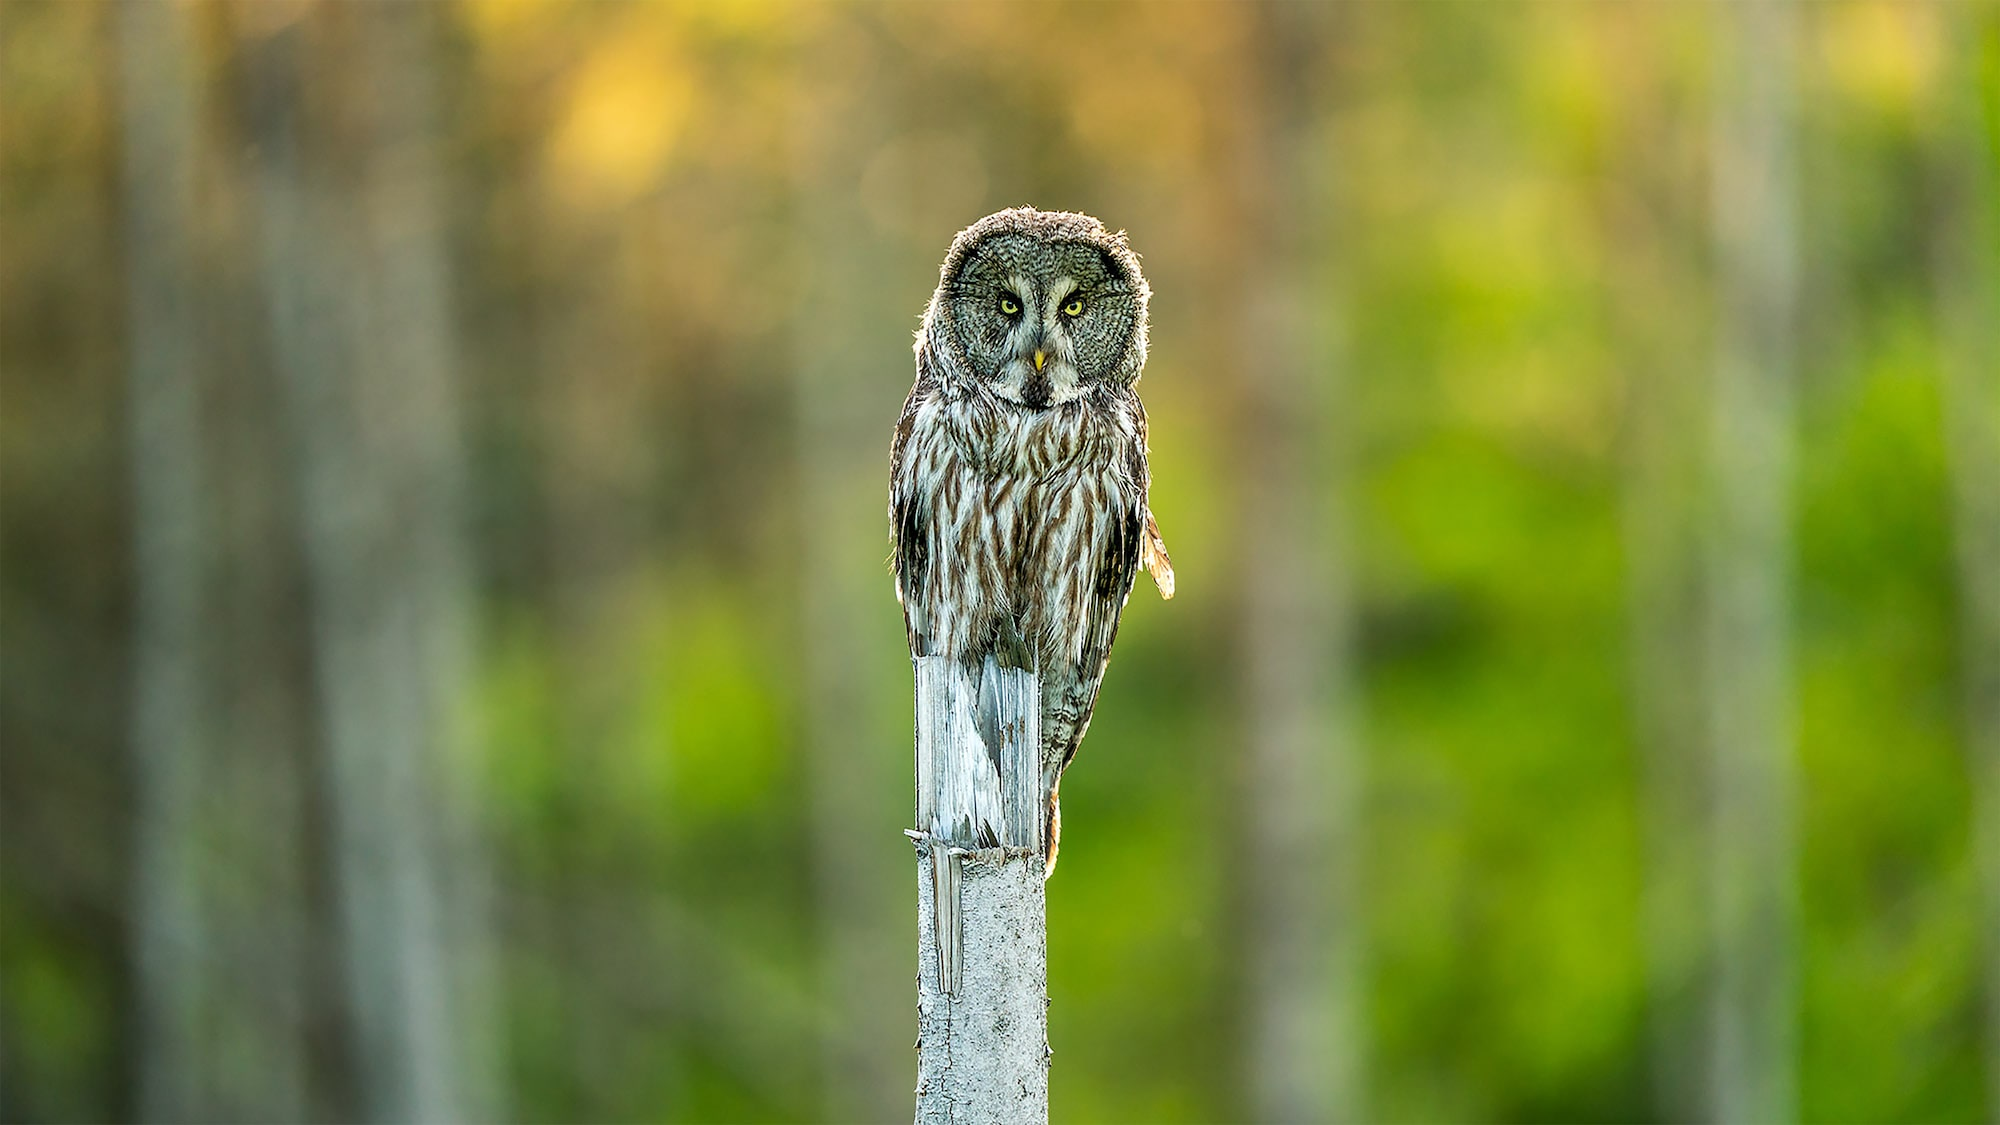 floris smeets sony alpha 9 grey owl sitting on a post staring intently at the photographer